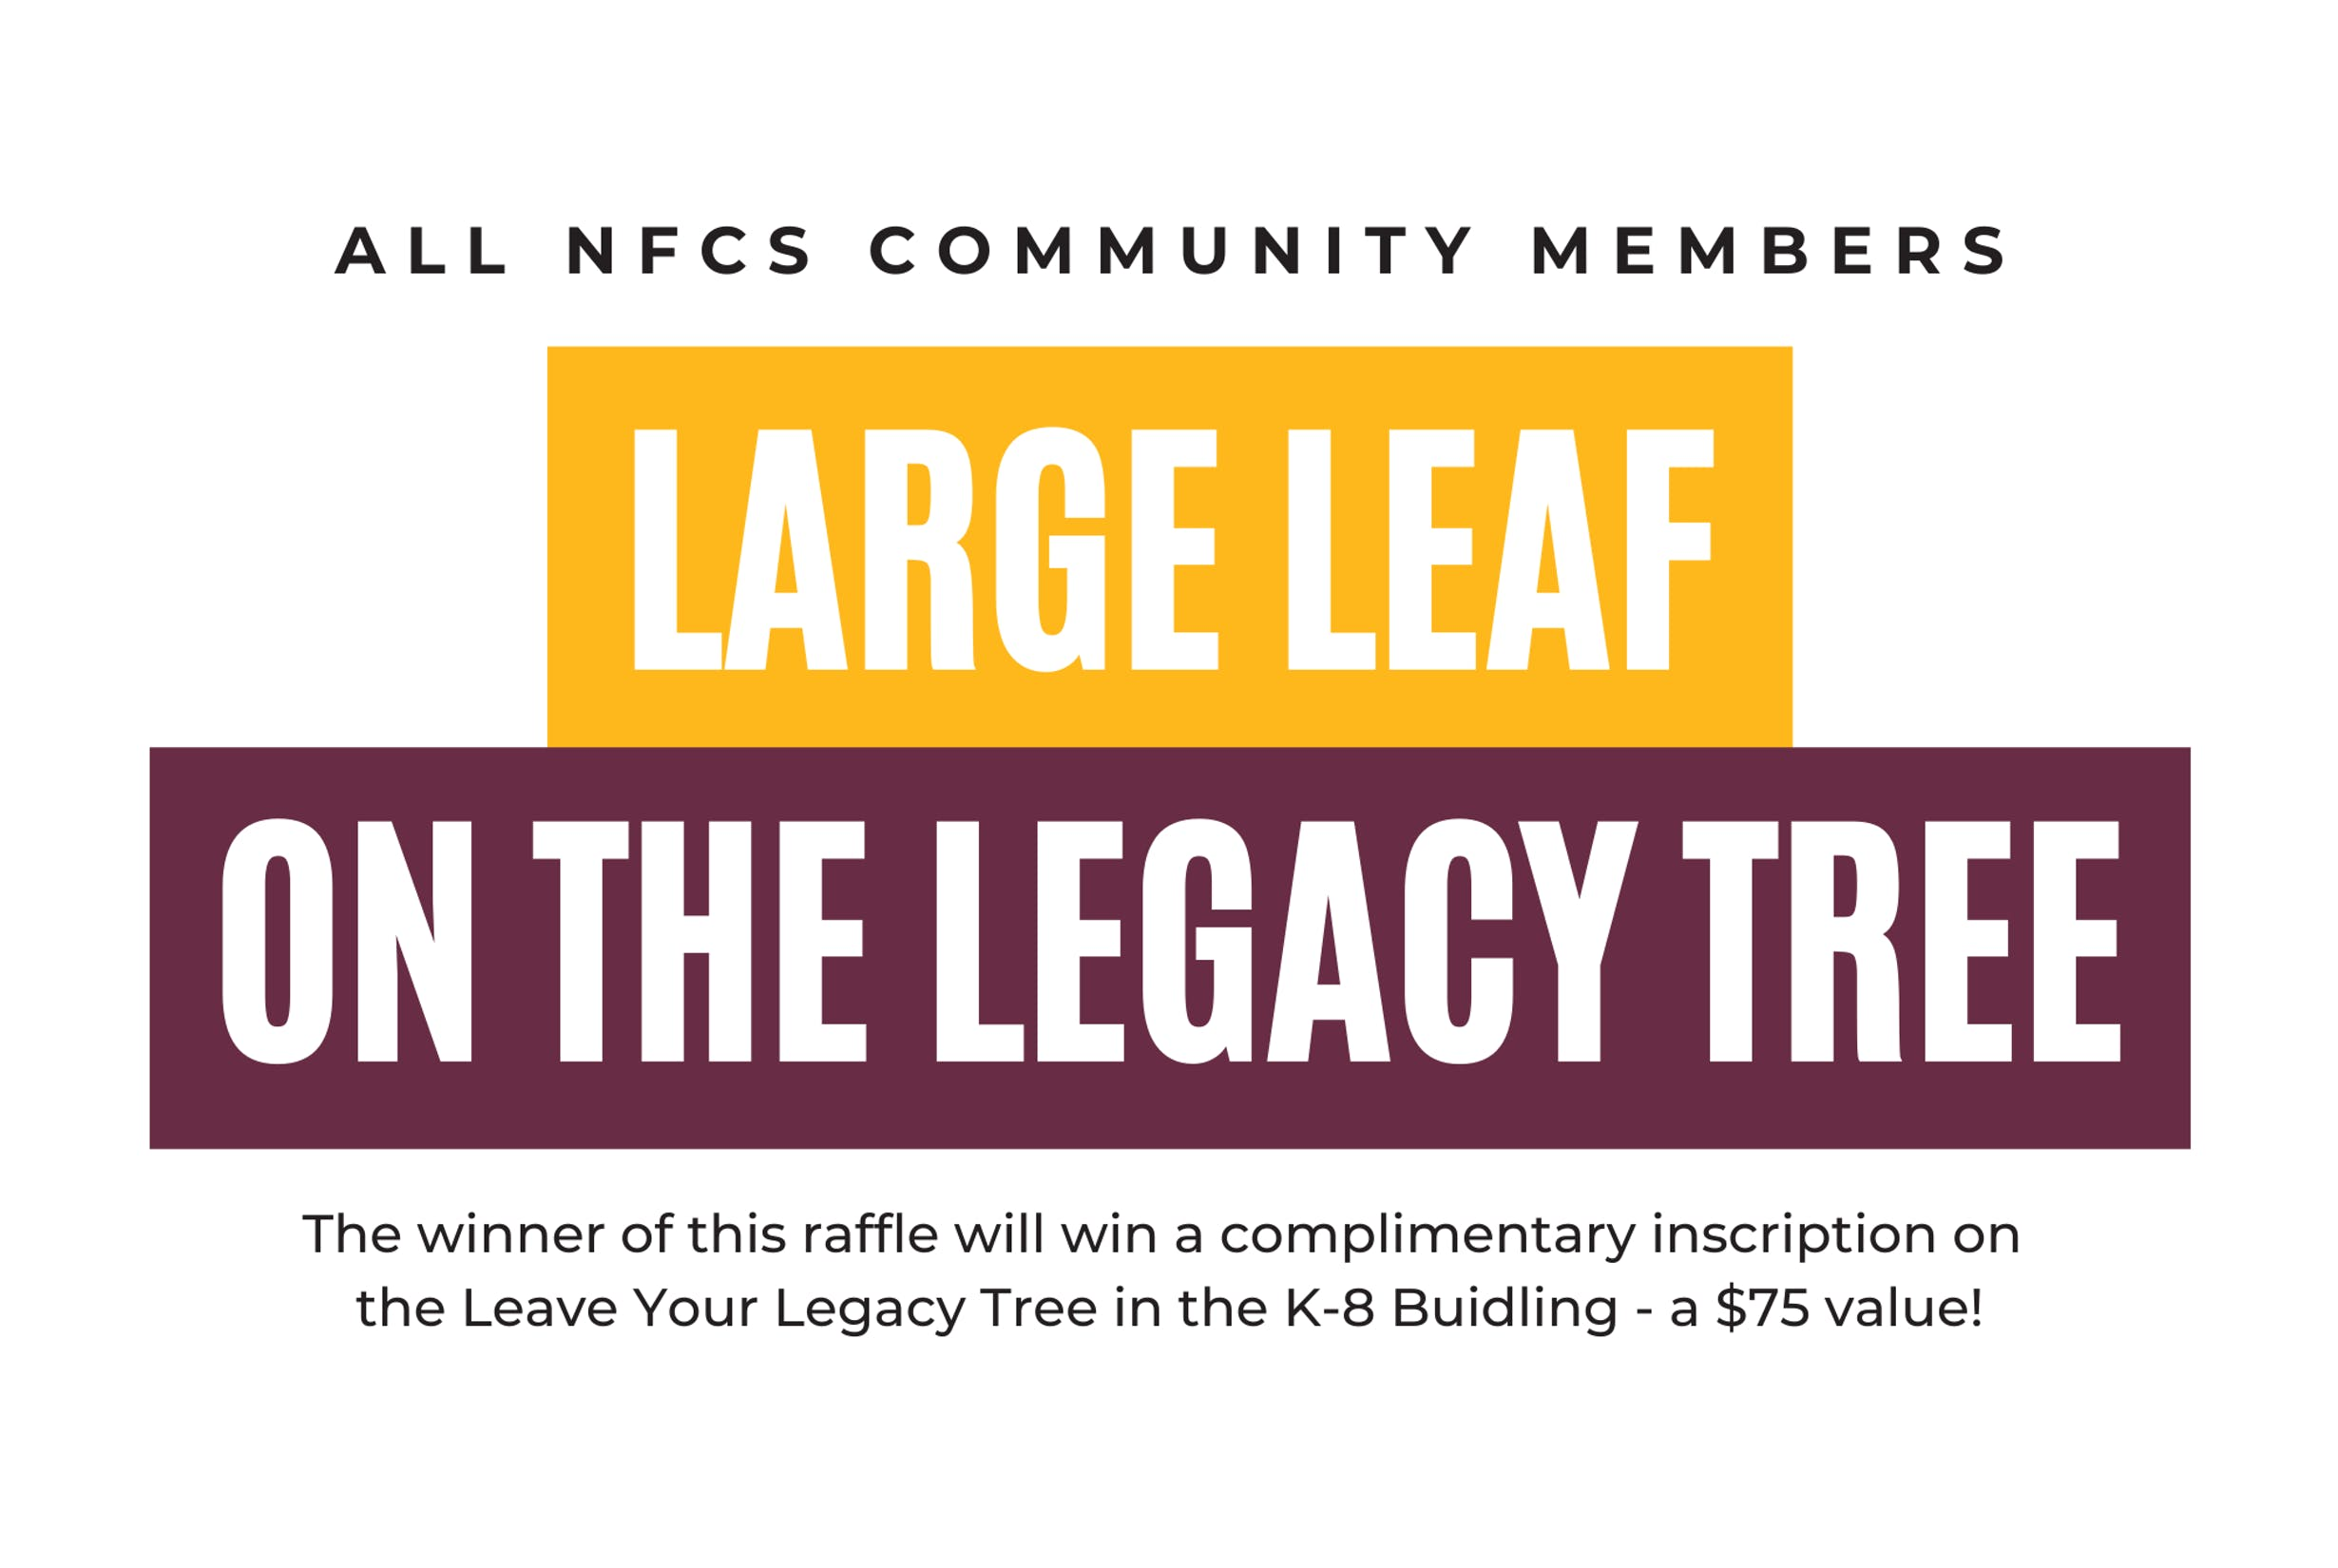 Large Leaf on the Legacy Tree Prize